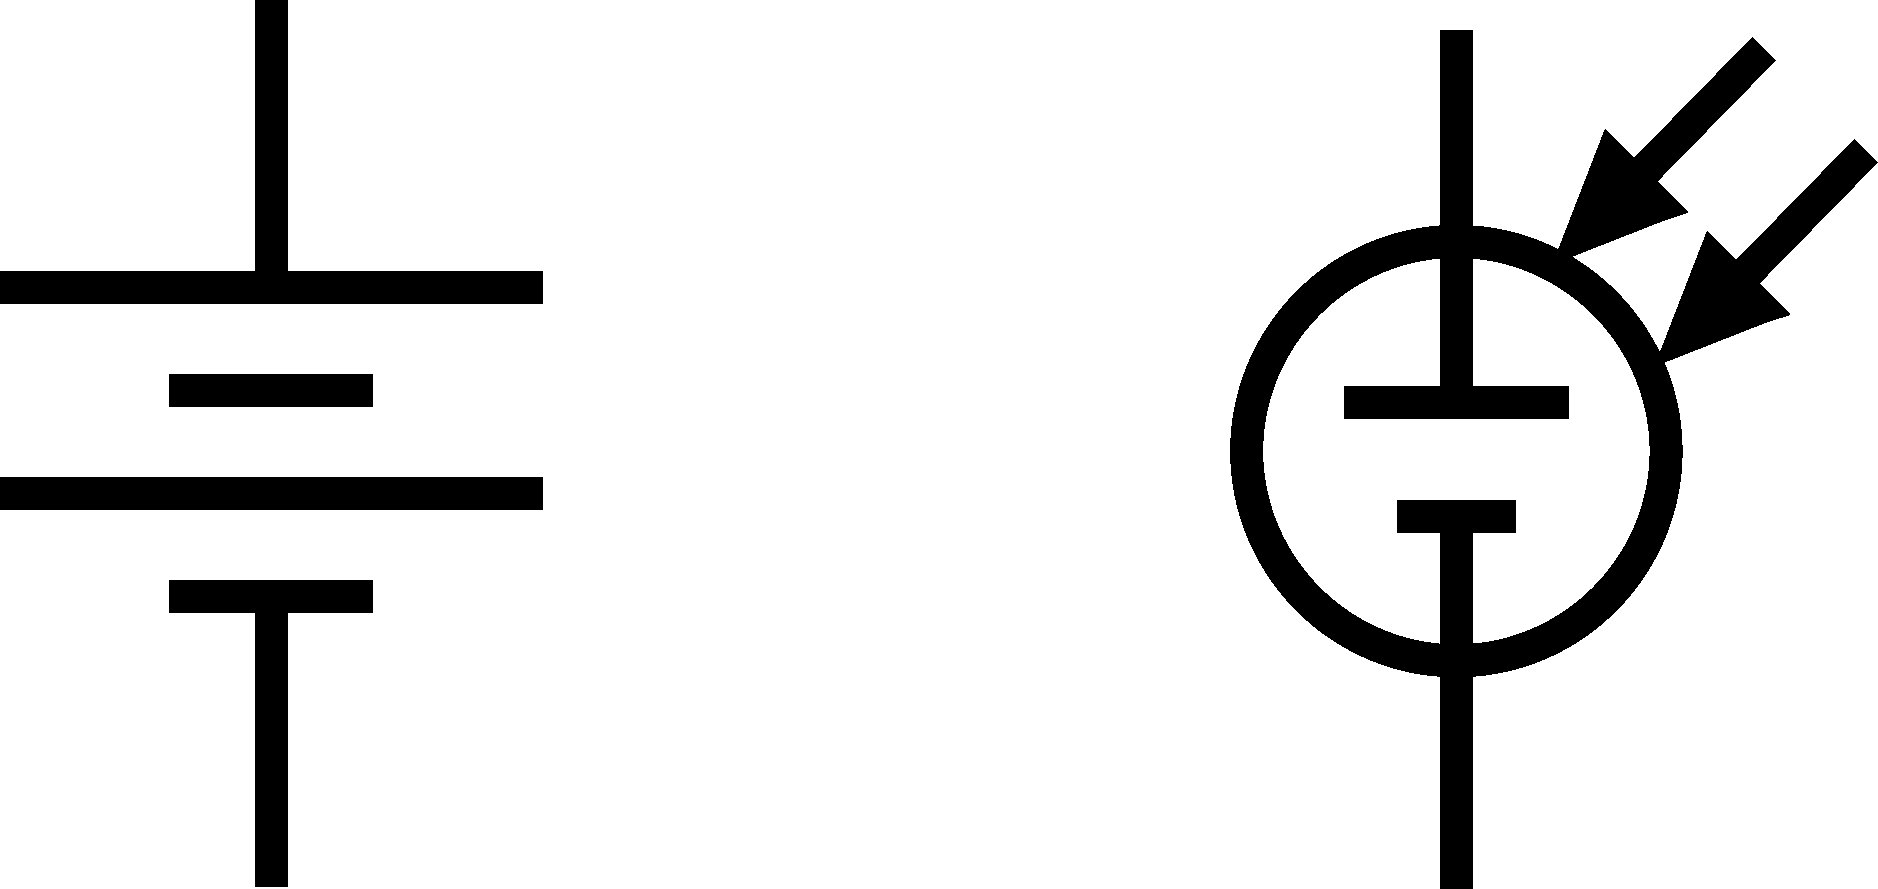 symbol of a battery